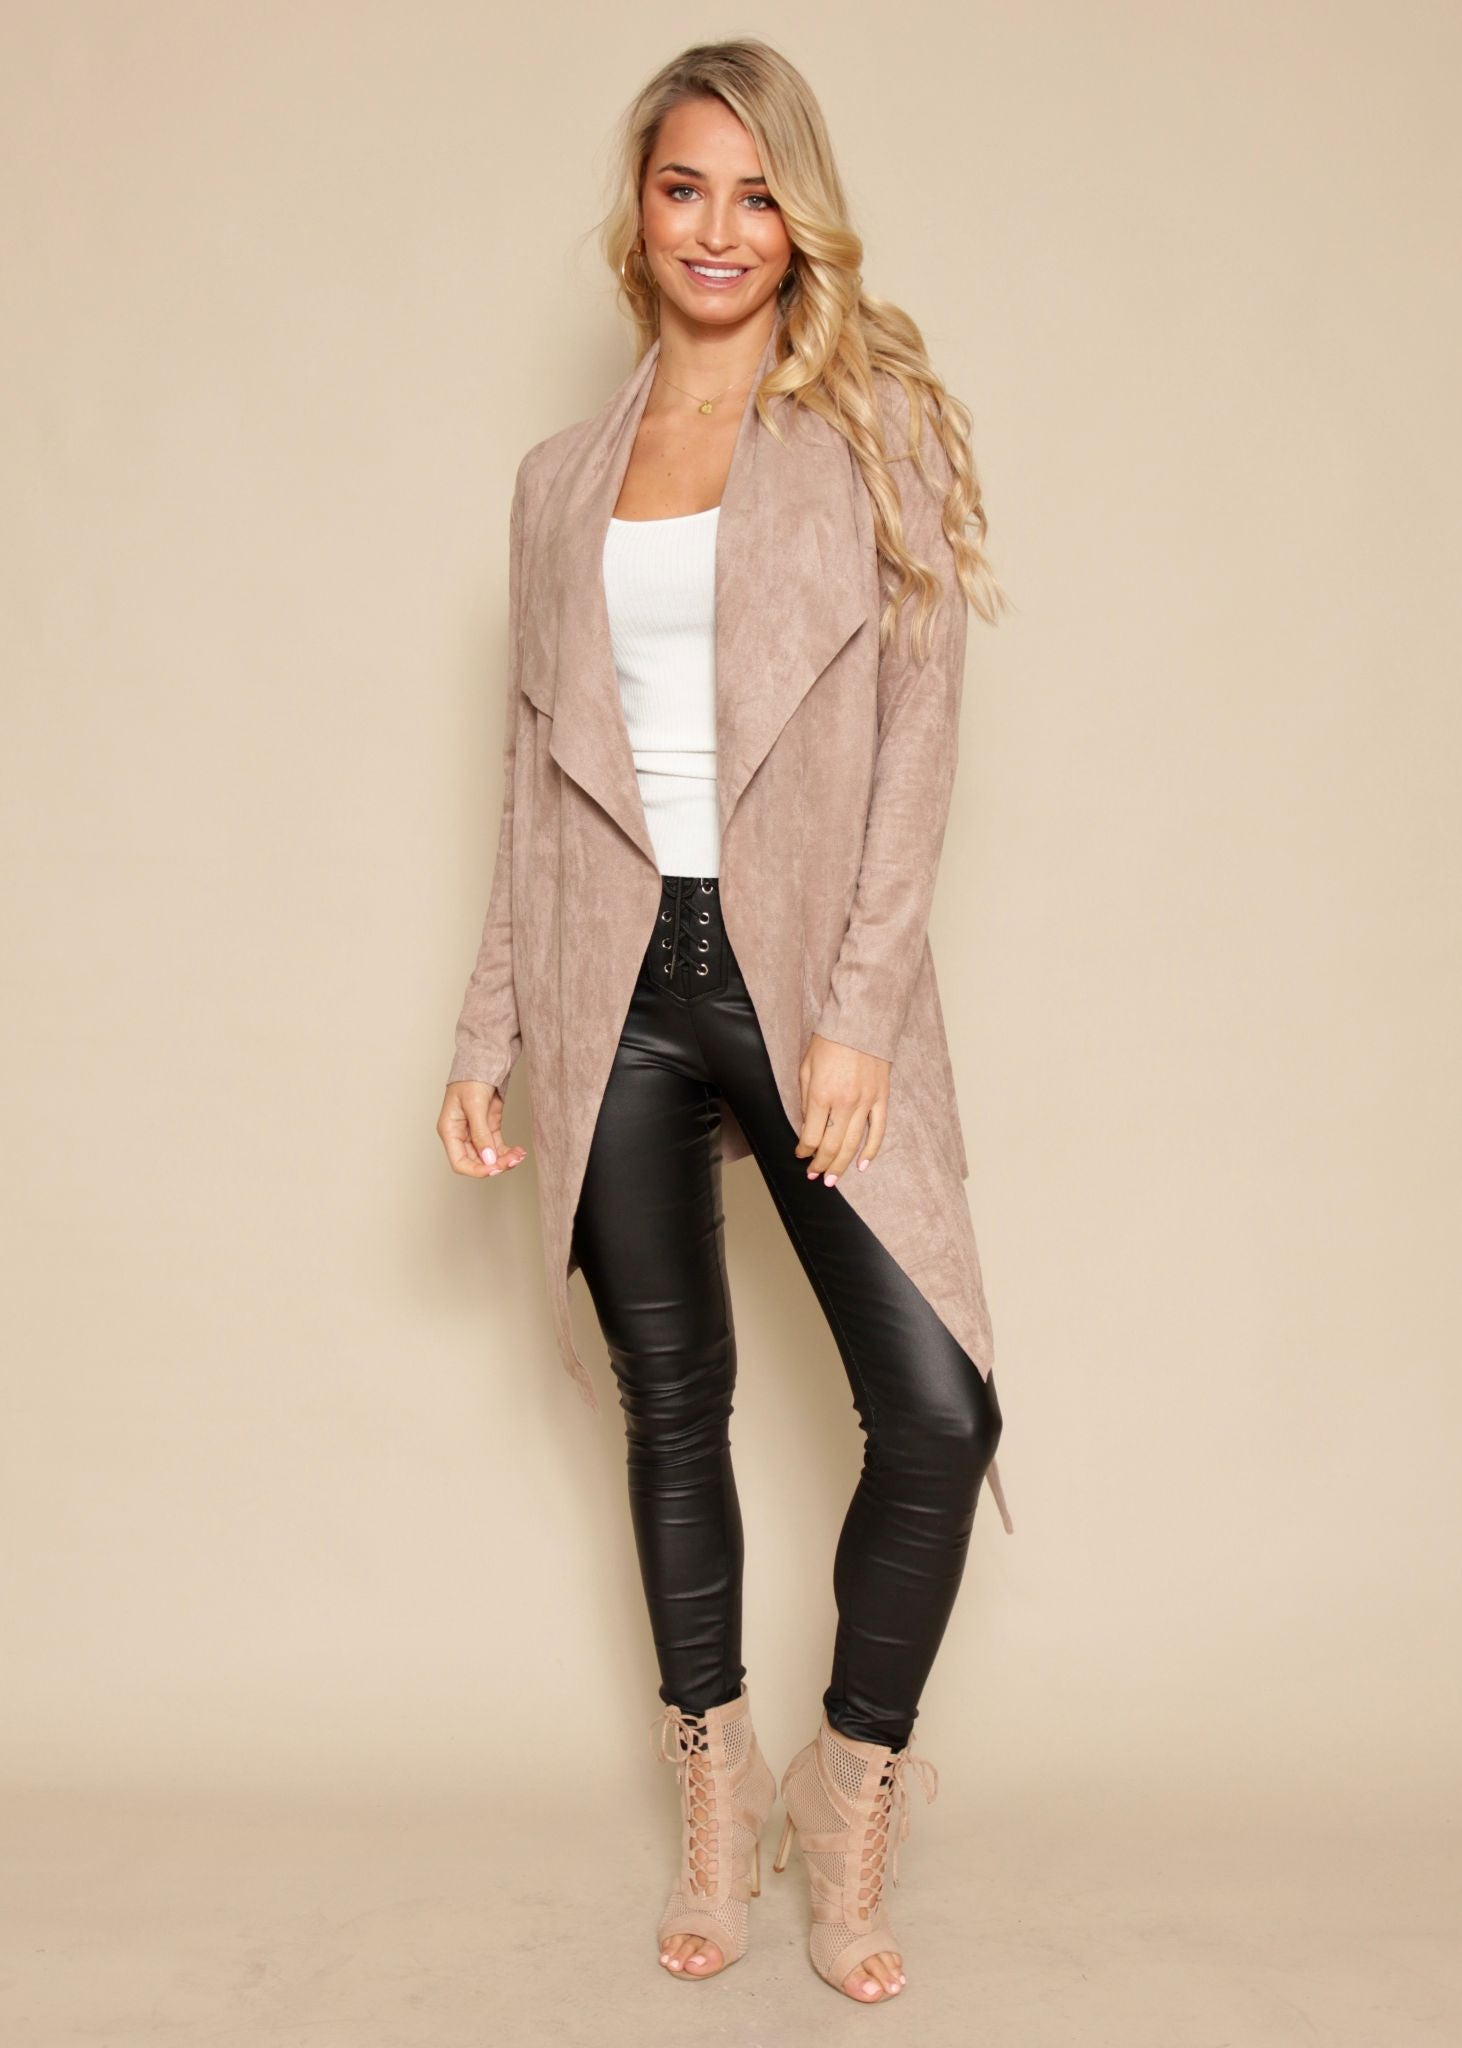 Nordic Night Suede Jacket - Taupe